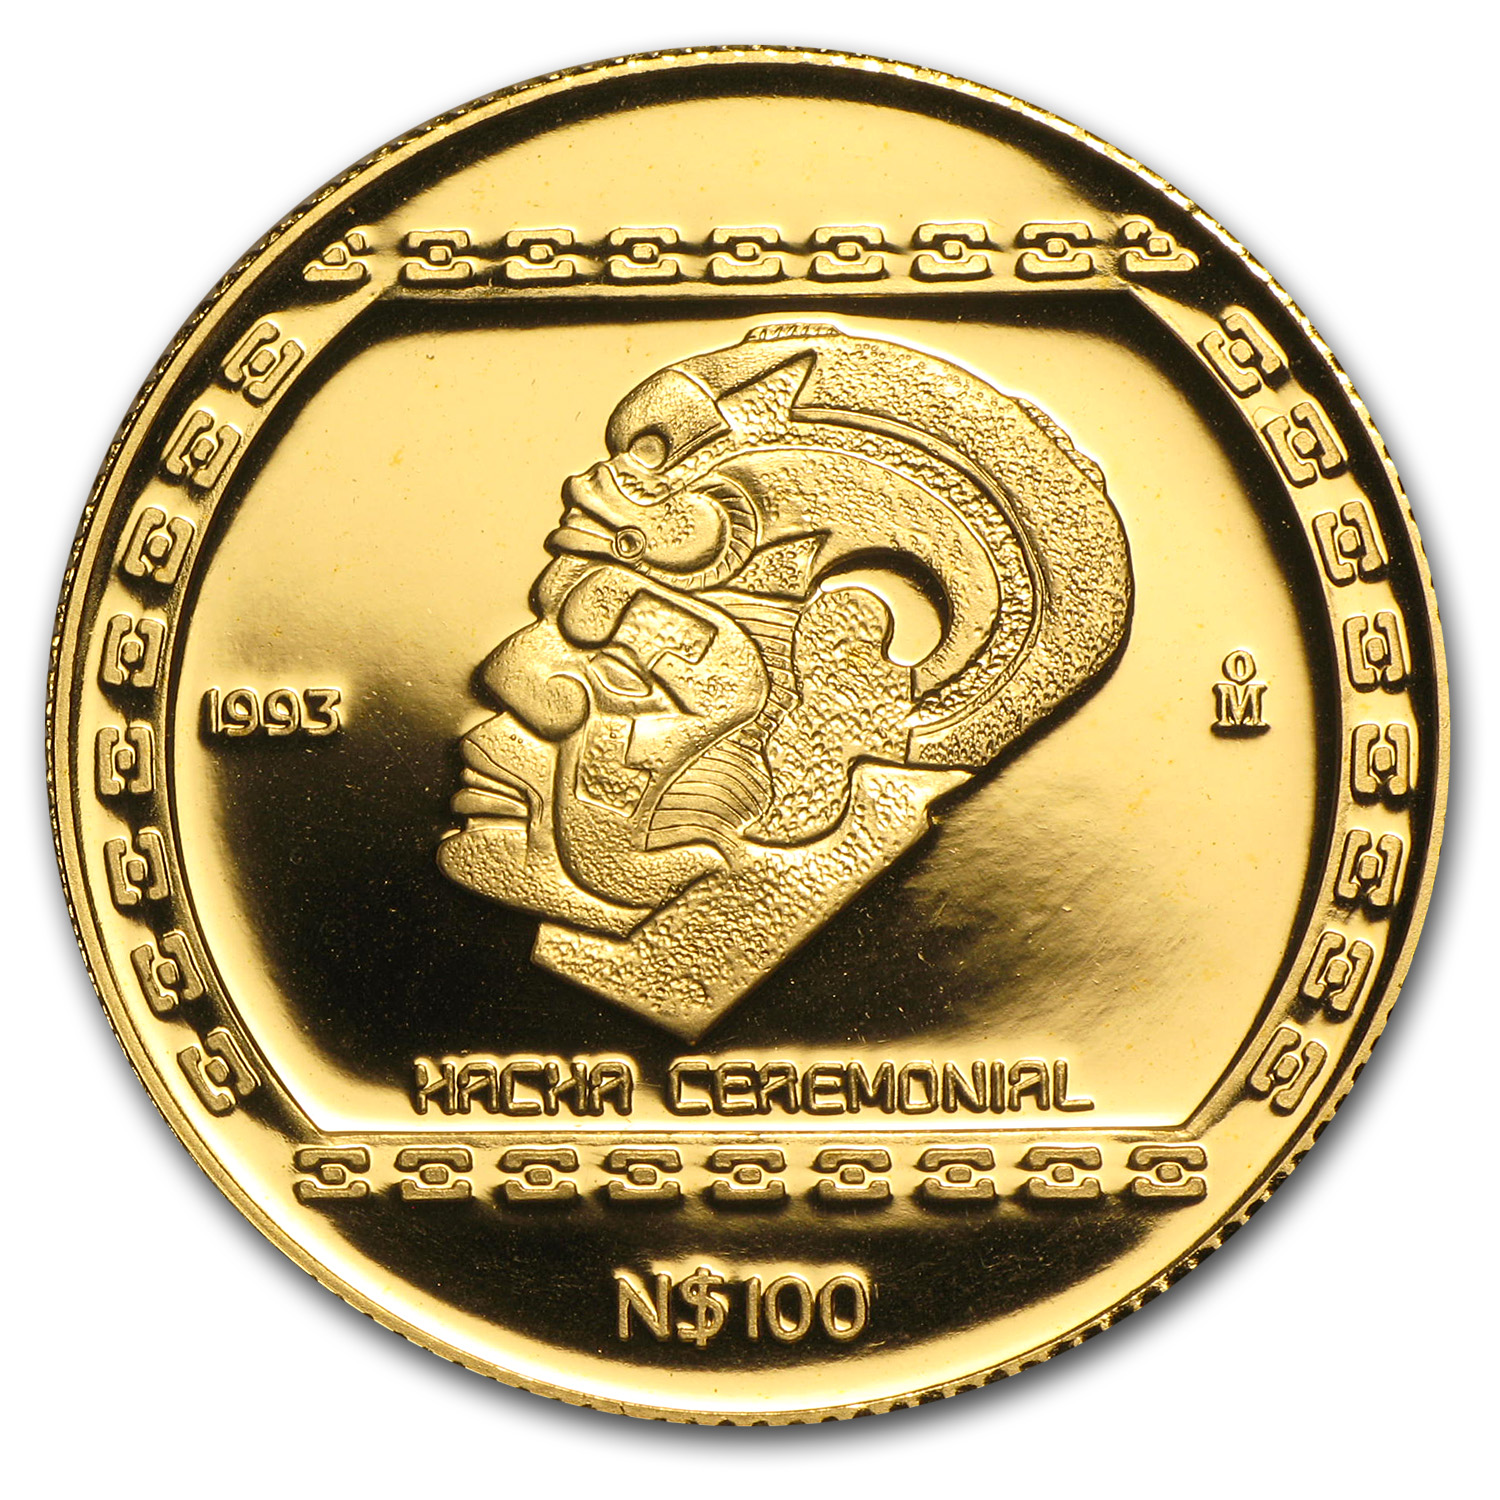 1993 Mexico Gold 100 Pesos Hacha Ceremonial Proof